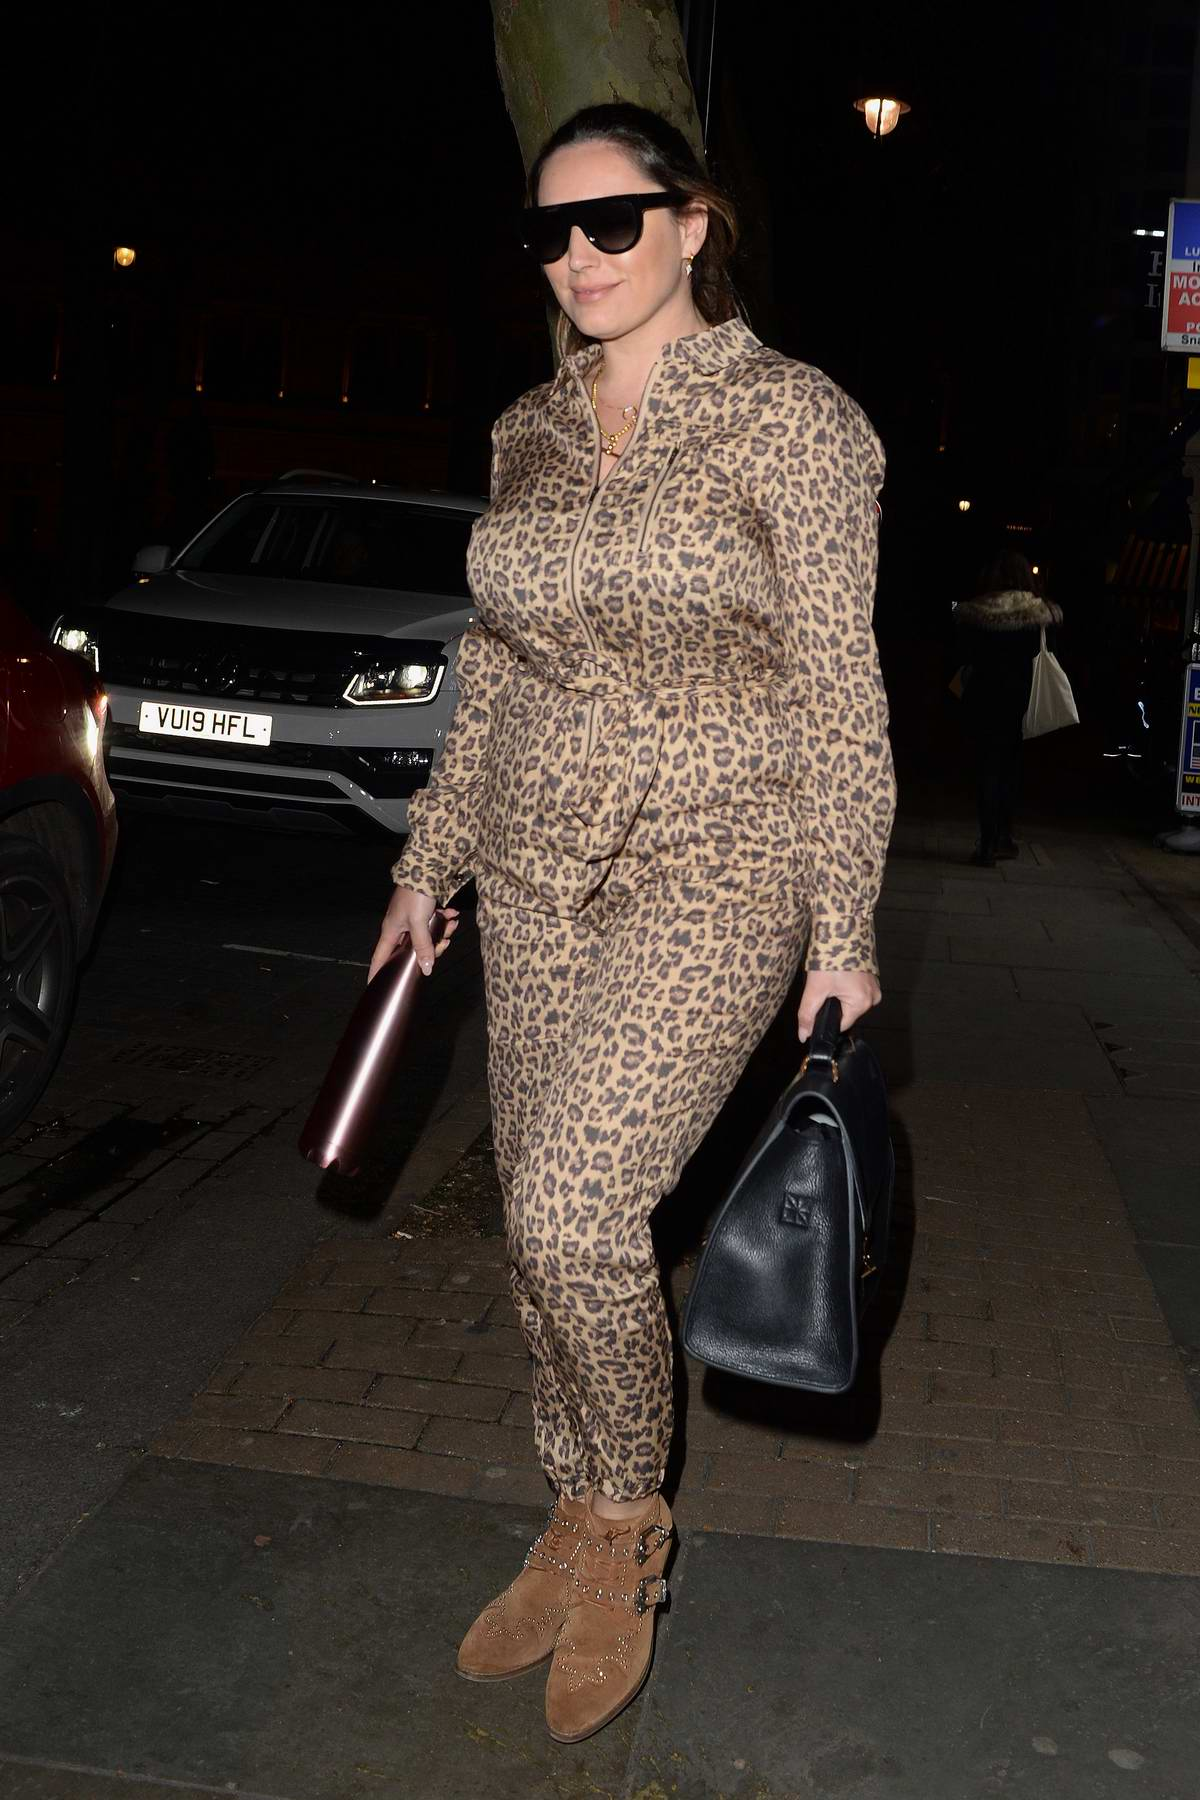 Kelly Brook looks great in an animal print jumpsuit as she leaves the Global Radio Studios in London, UK